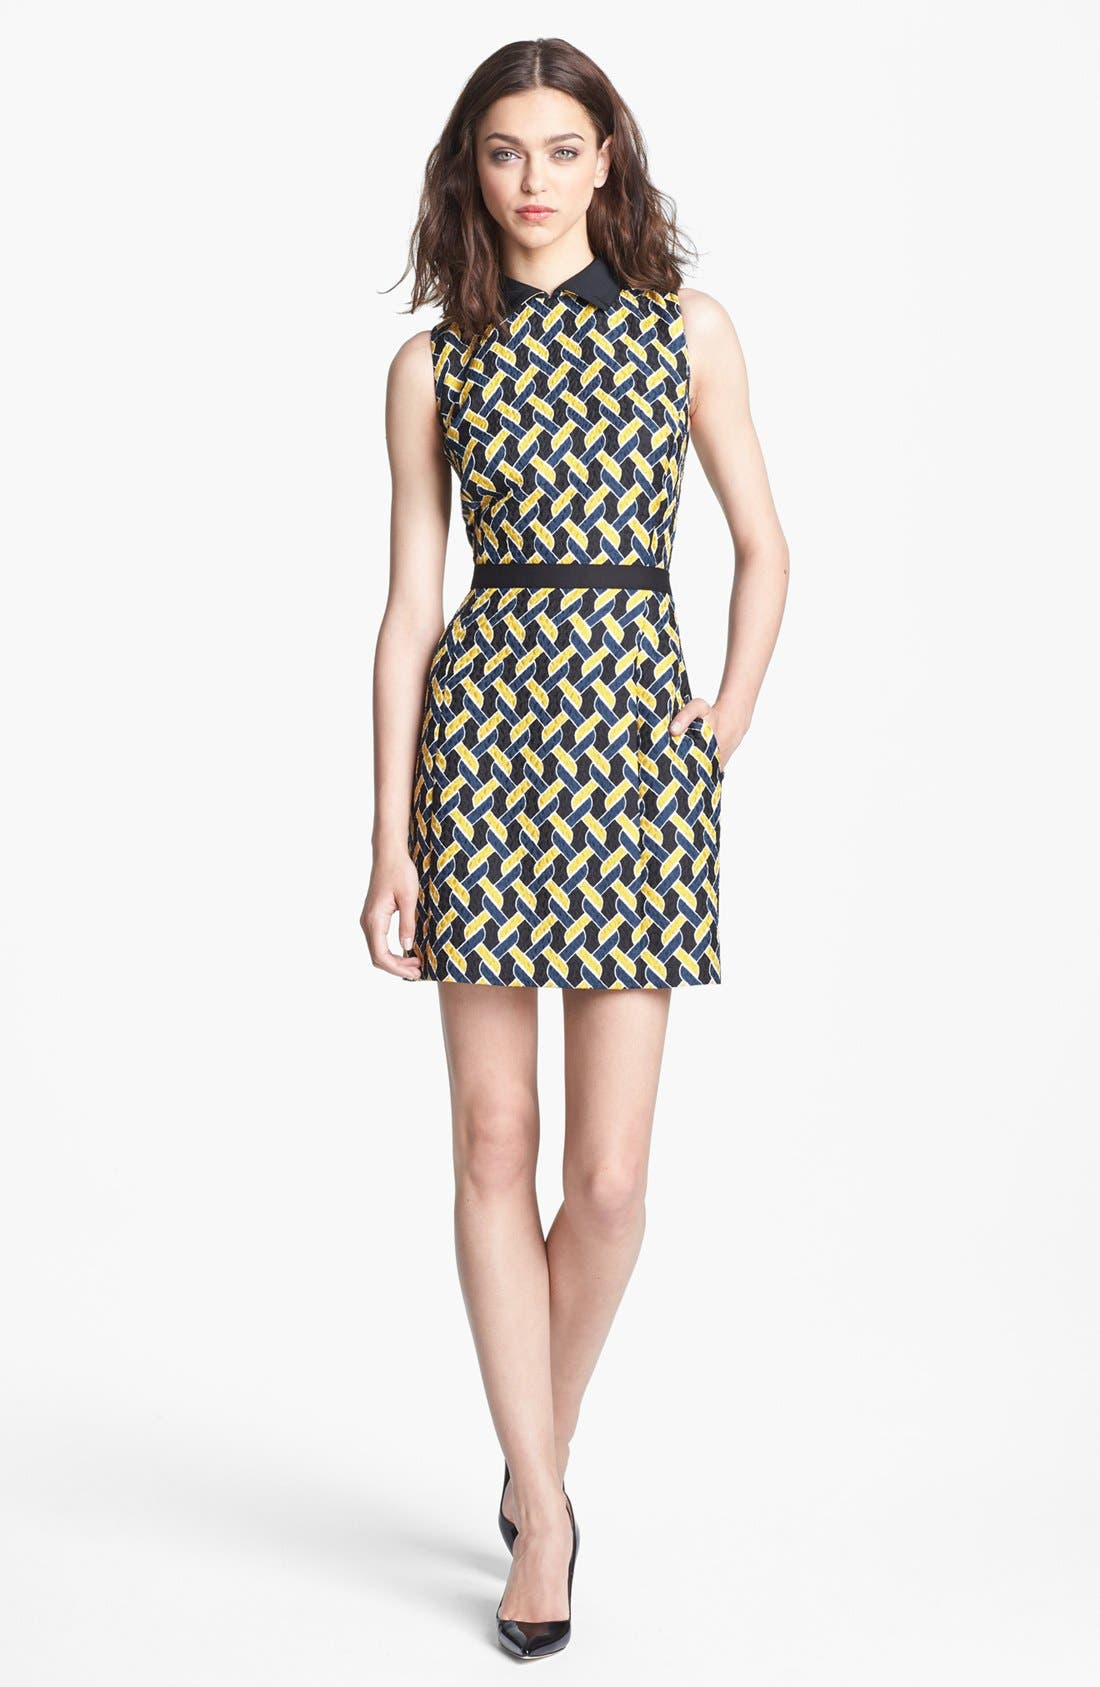 Alternate Image 1 Selected - Miss Wu Abstract Chain Jacquard Dress (Nordstrom Exclusive)